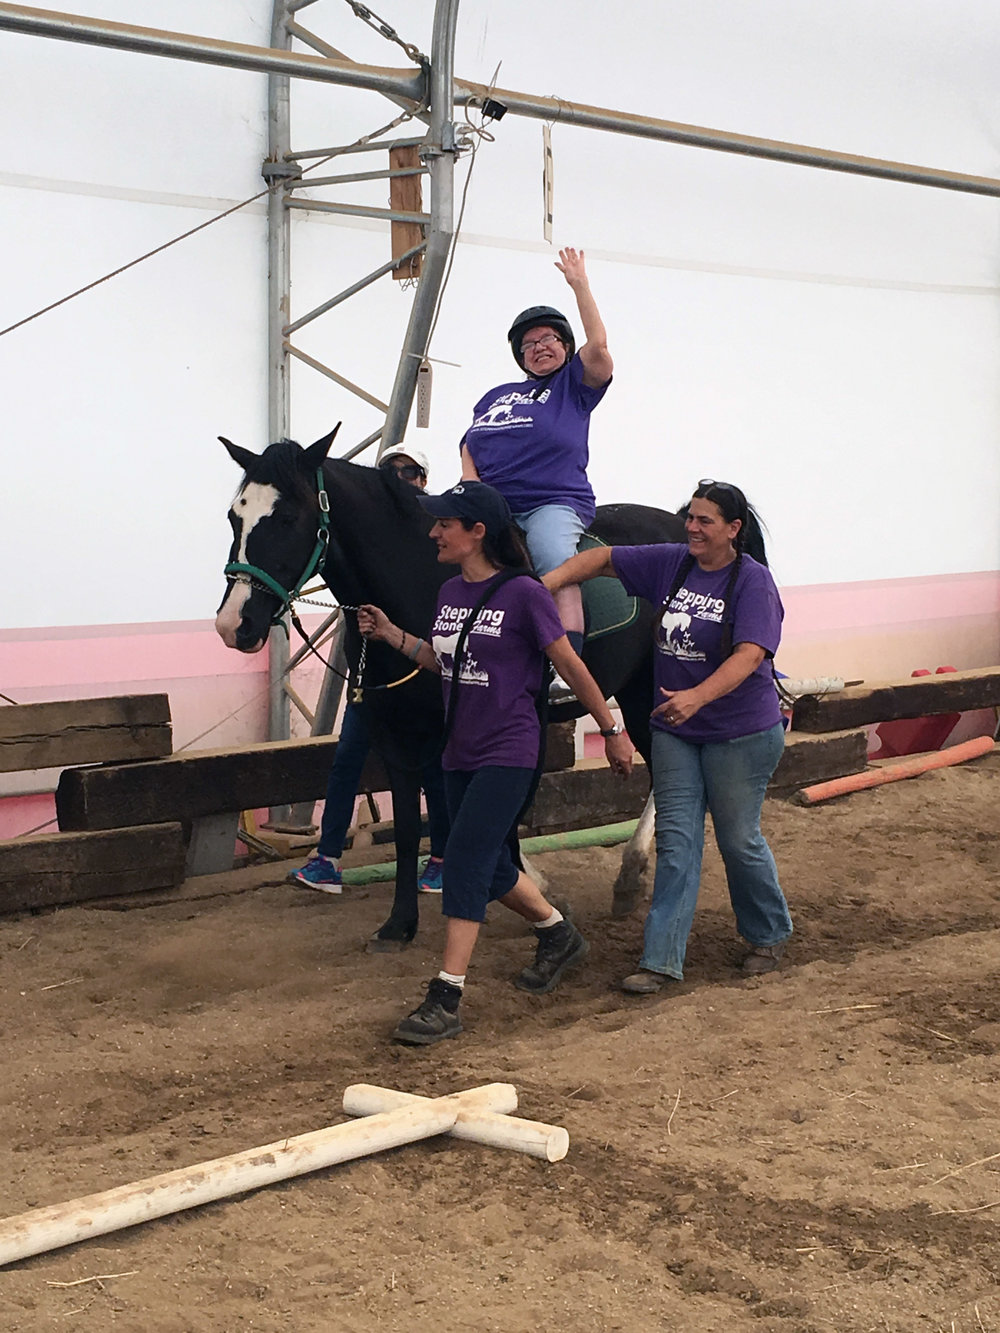 Pamela waves as Yvette and Lia walk her safely around the indoor arena at Stepping Stone Farms.